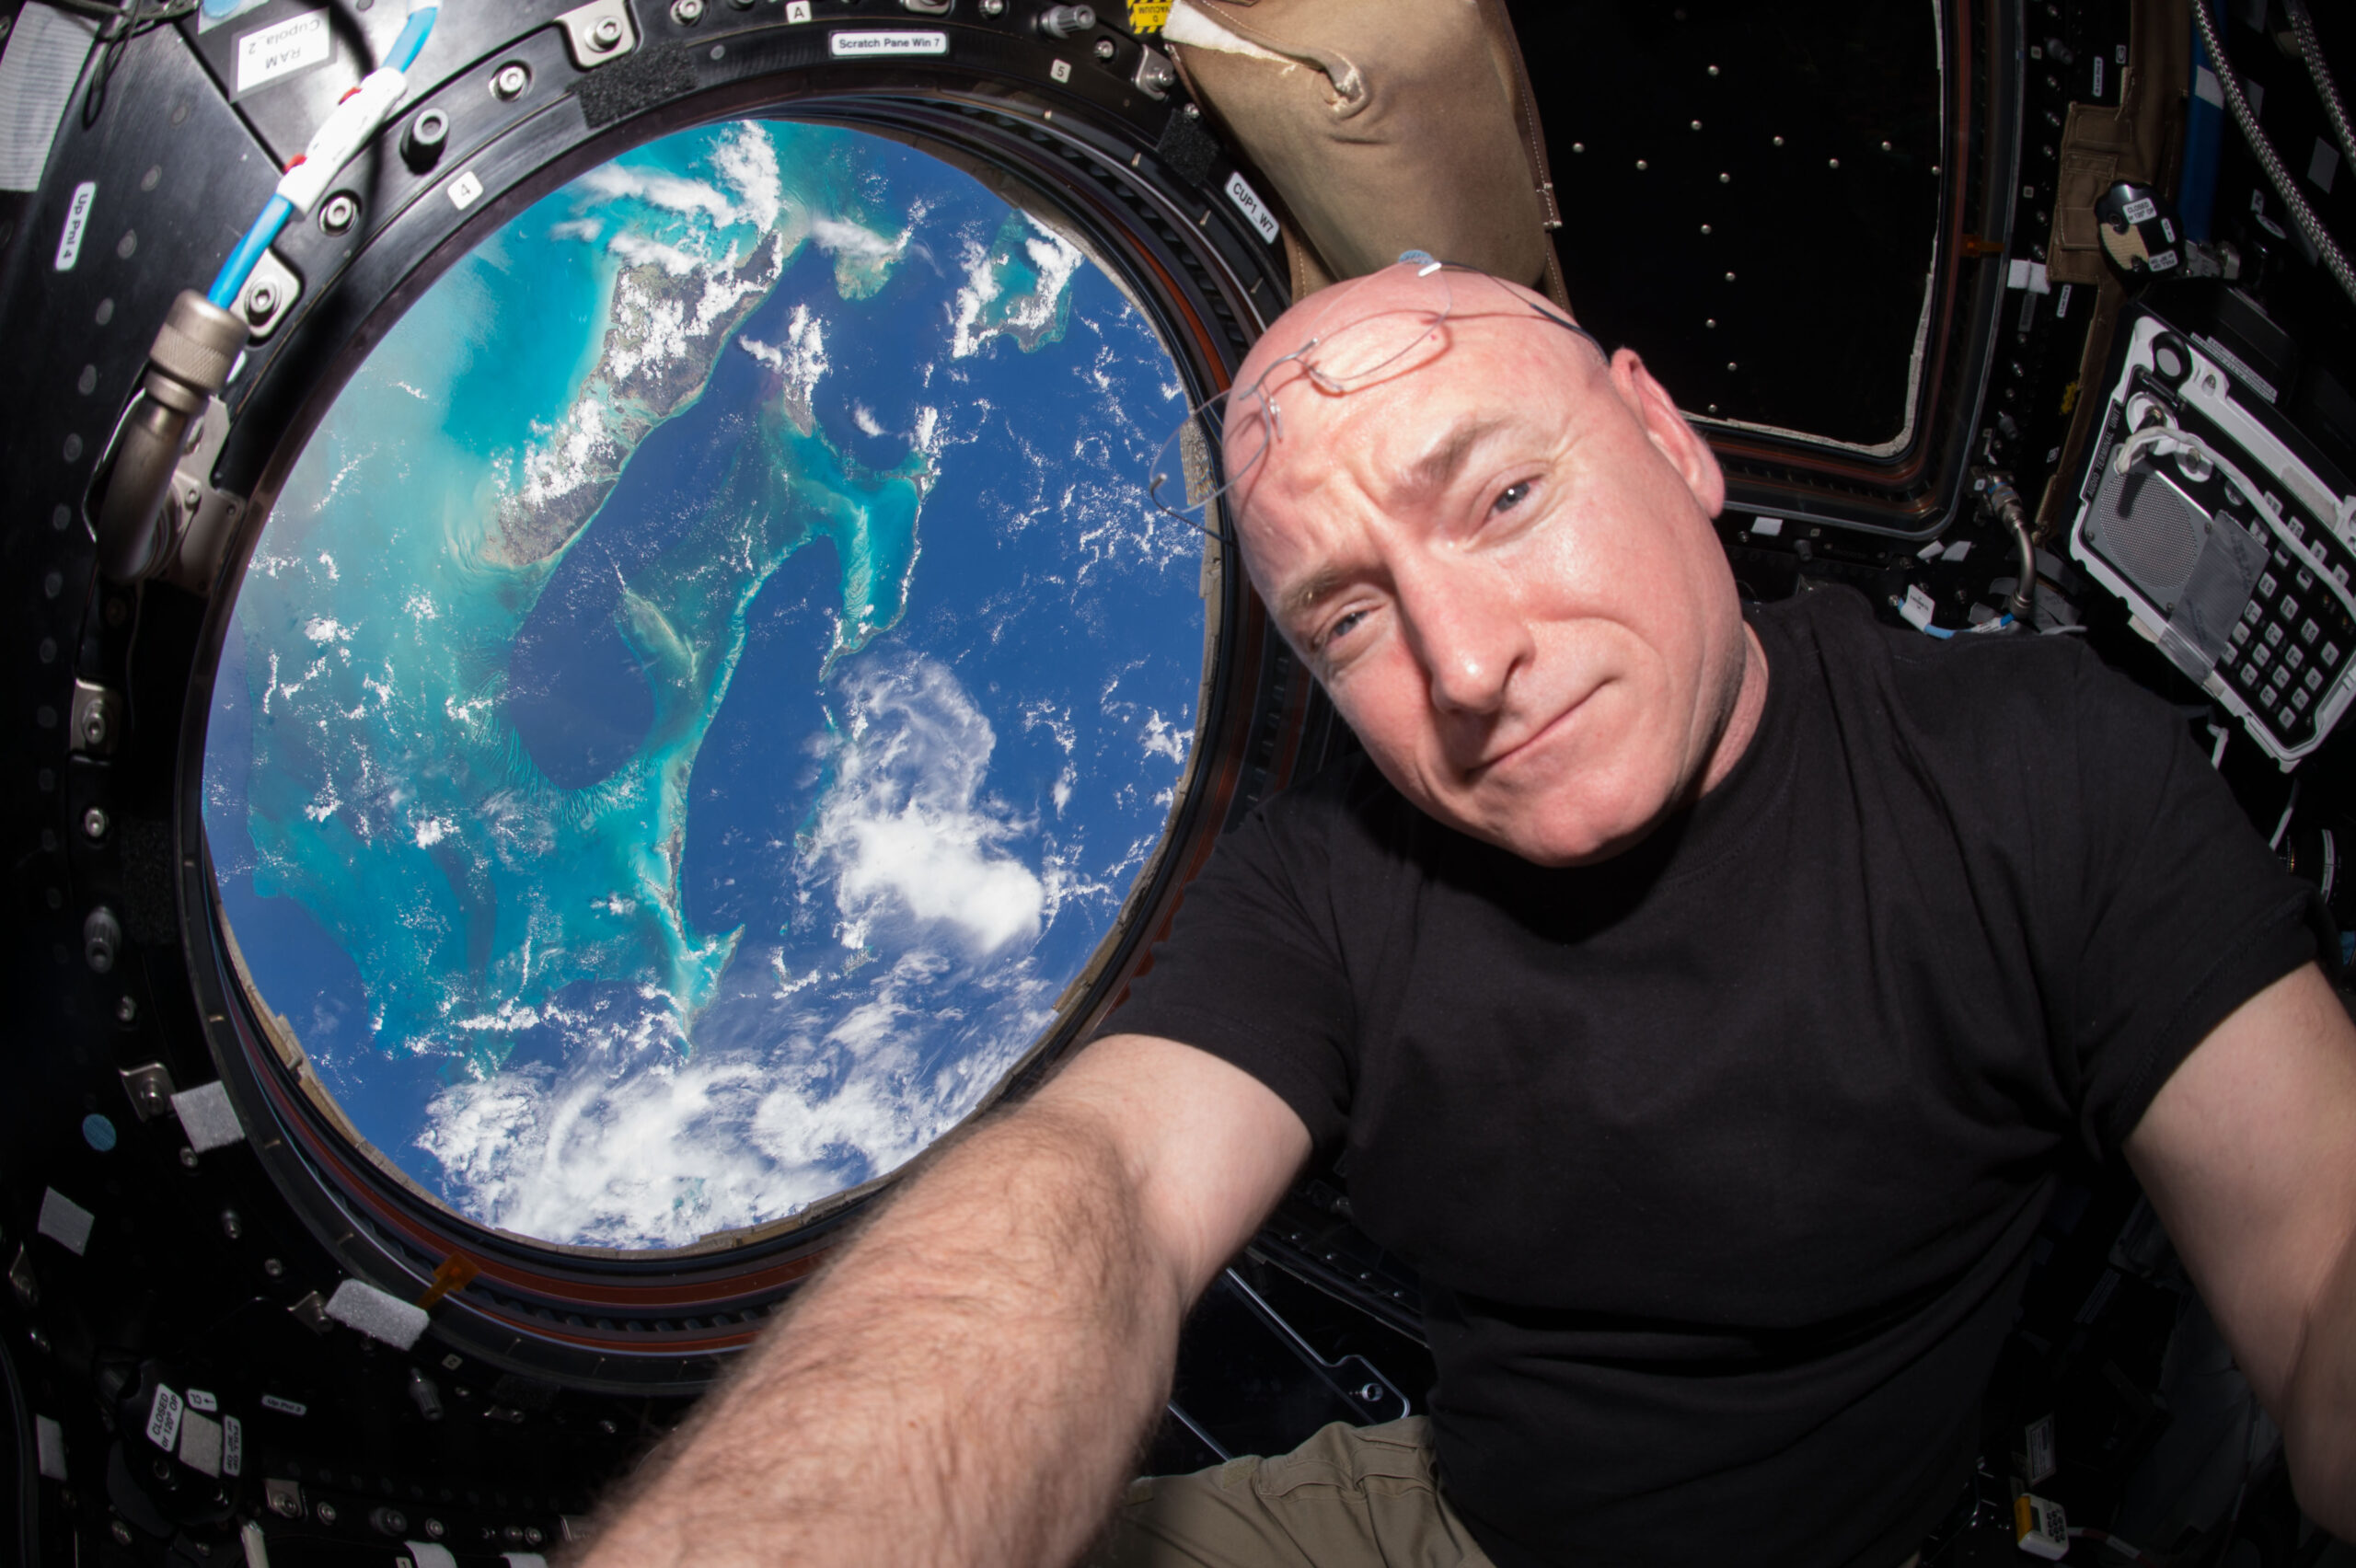 In space, at sea: quarantine advice from people who really understand isolation